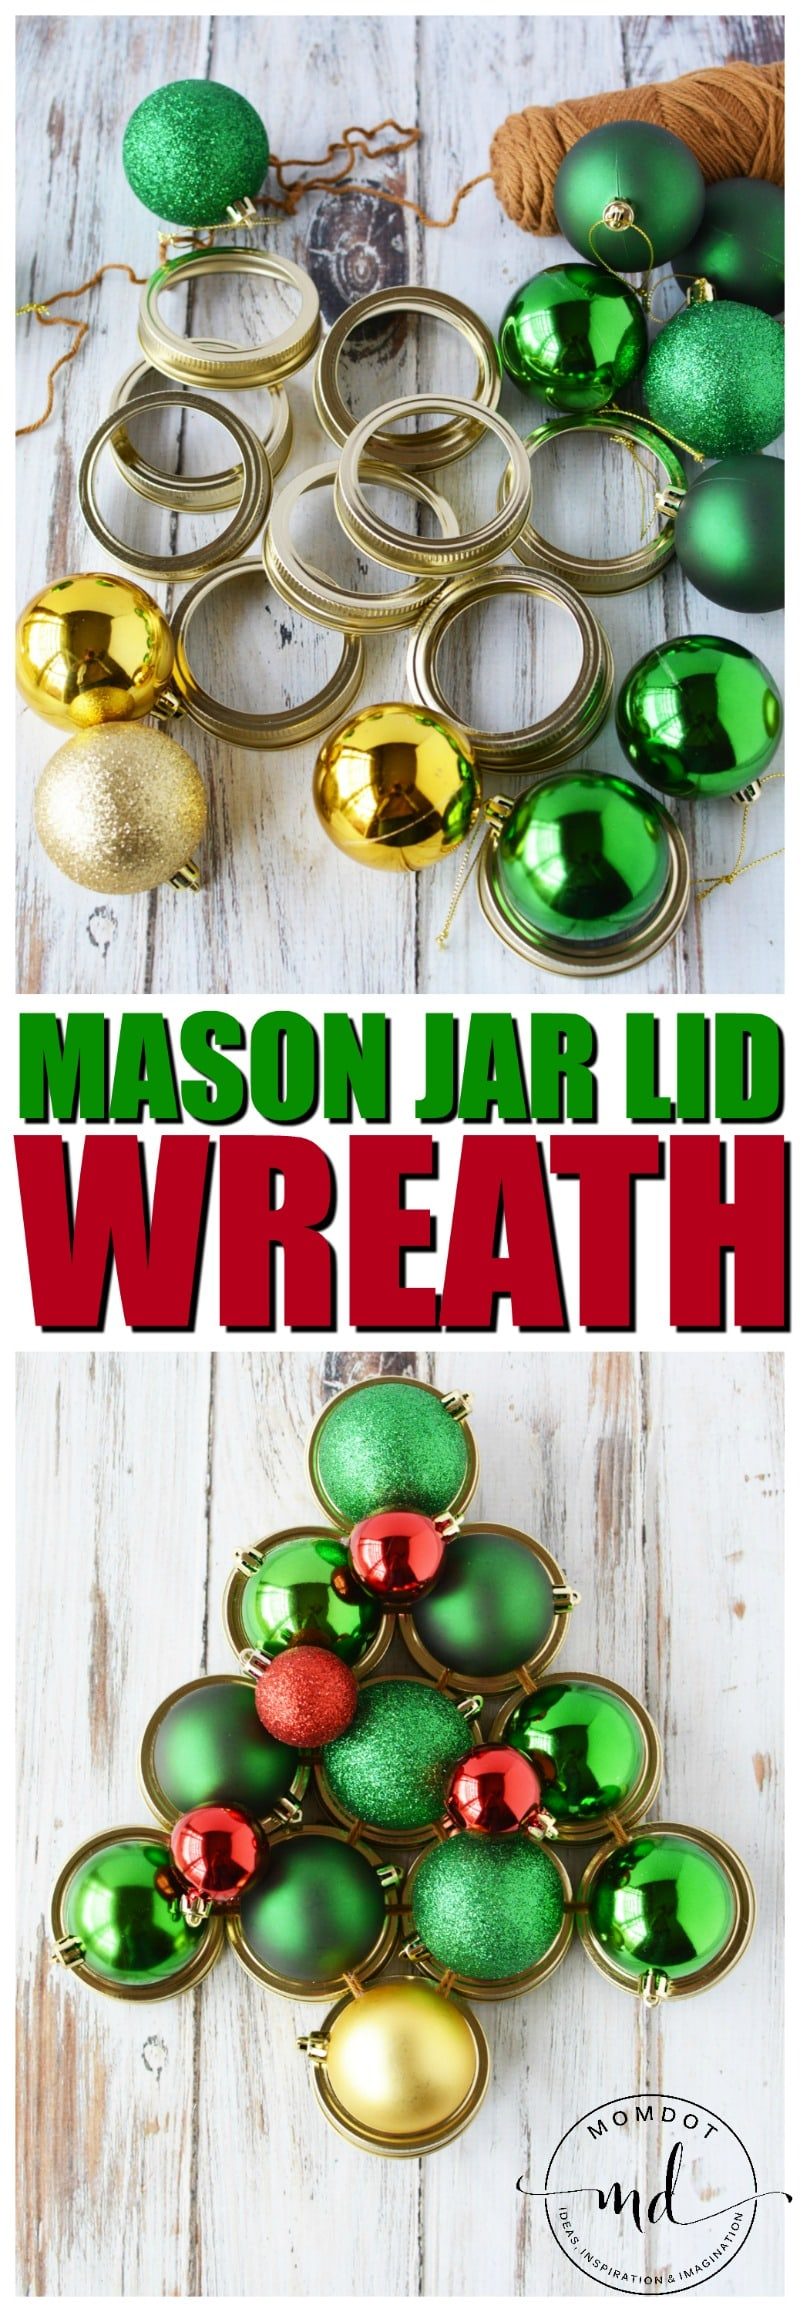 Mason Jar Lid Wreath | Christmas Wreath Tutorial using Mason Jar Lids | Holiday Mason Jar Crafts